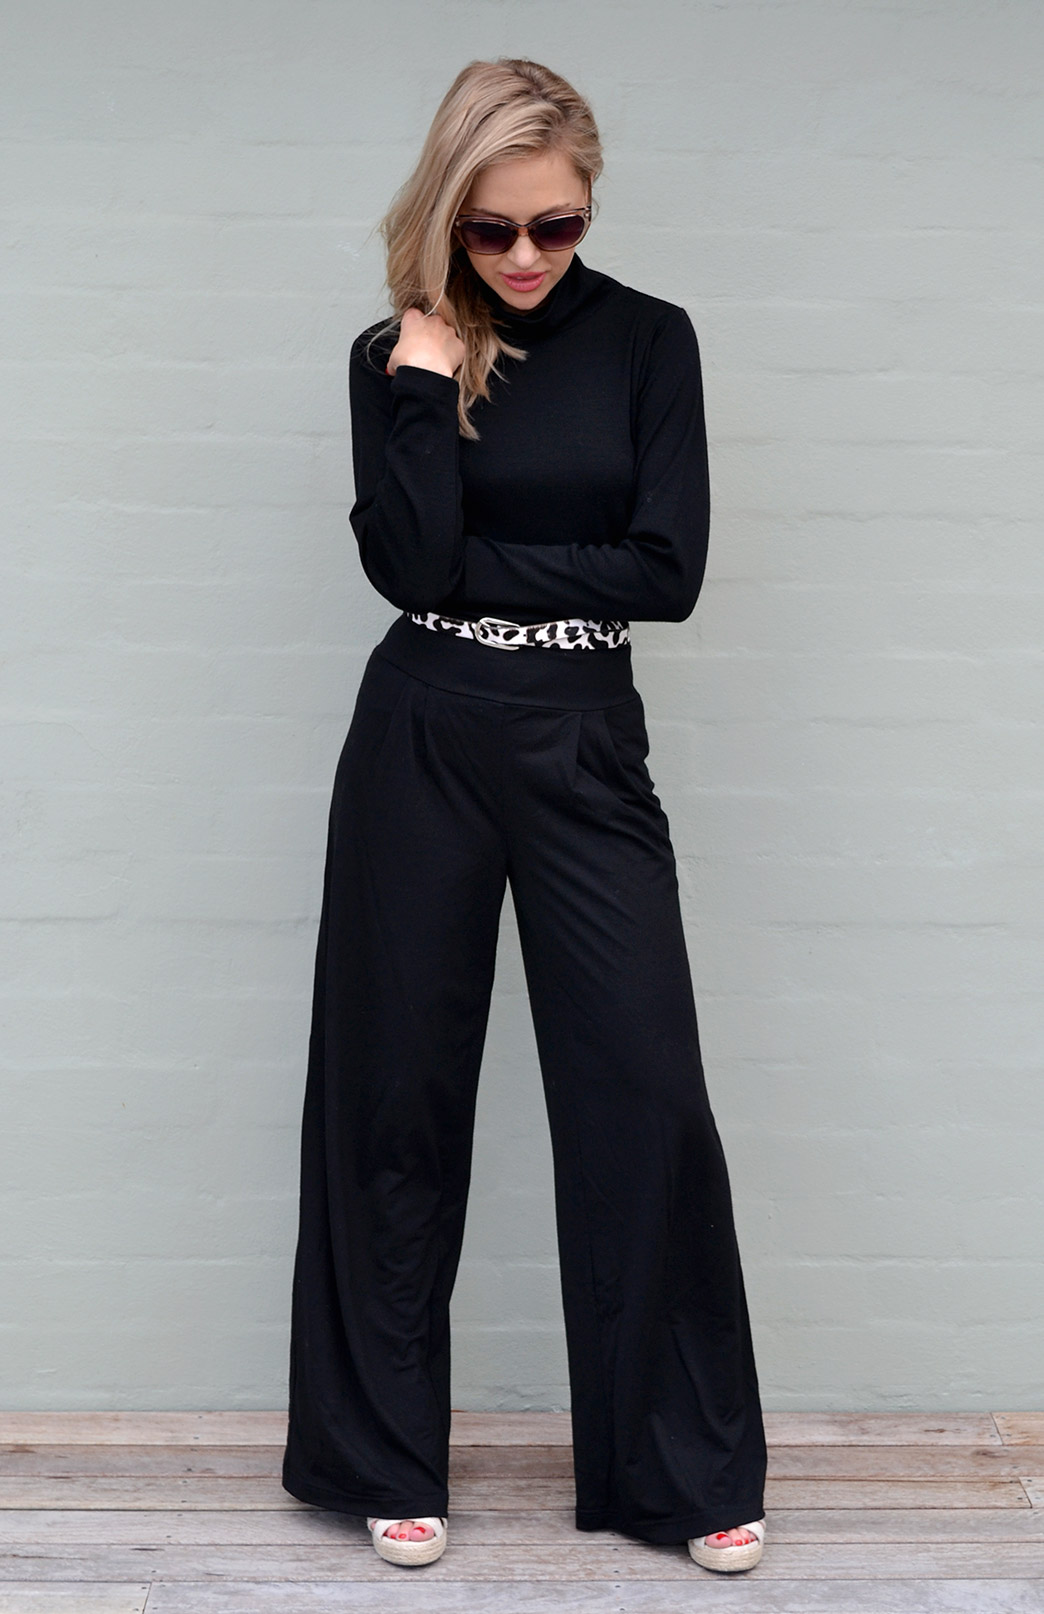 Palazzo Pants - Midweight - Women's Black Merino Wool Flared Wide Leg Yoga Pants with wide waistband - Smitten Merino Tasmania Australia